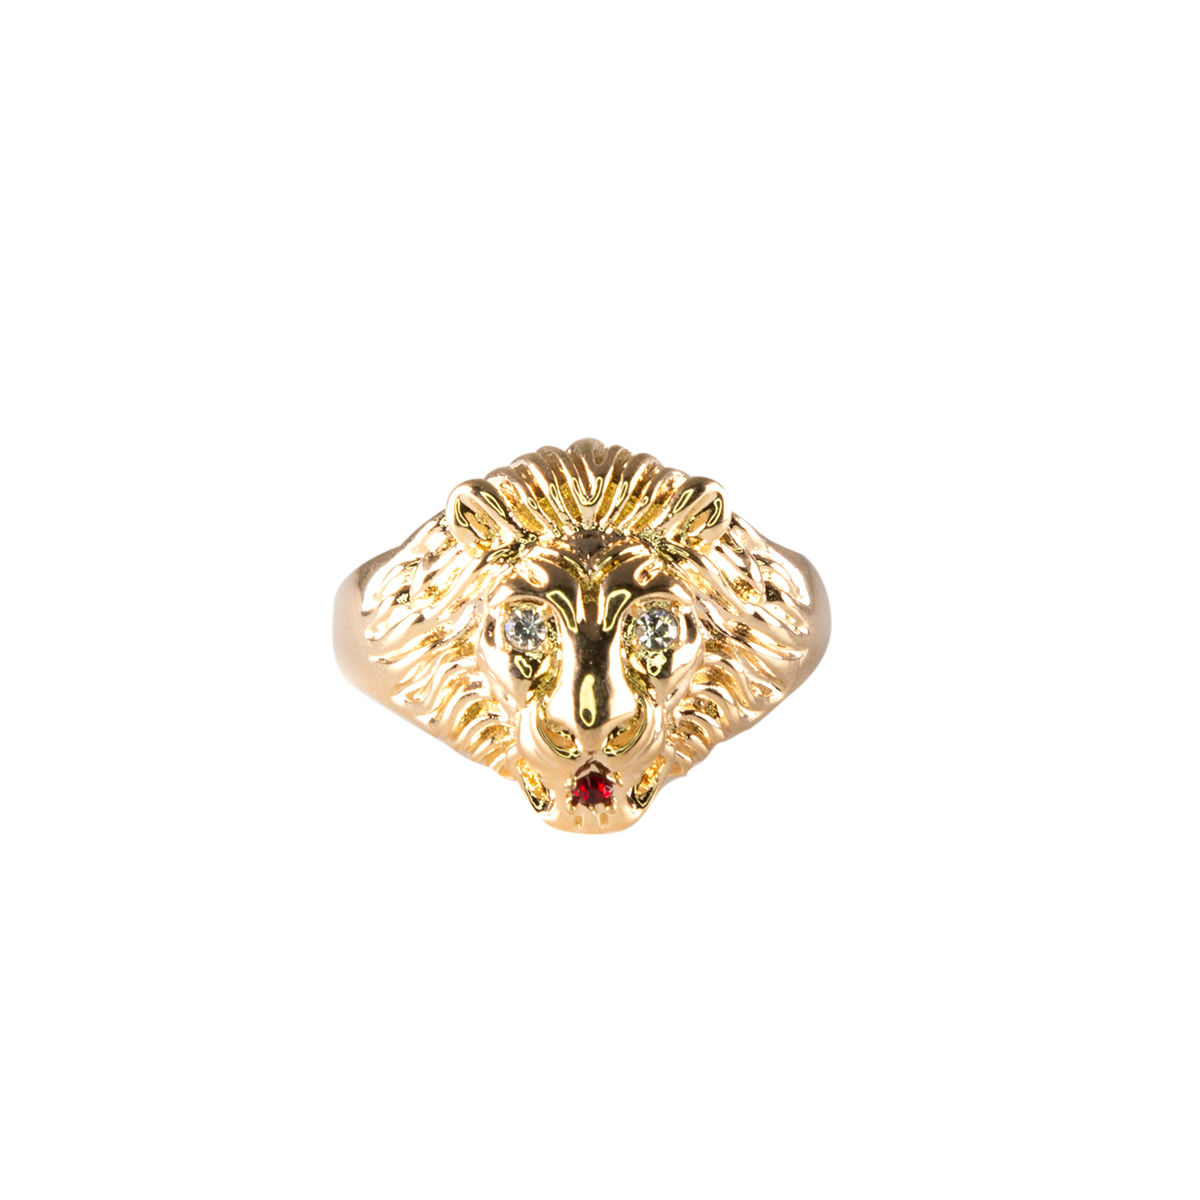 Lowell Hays 18K Gold Lion Head Ring